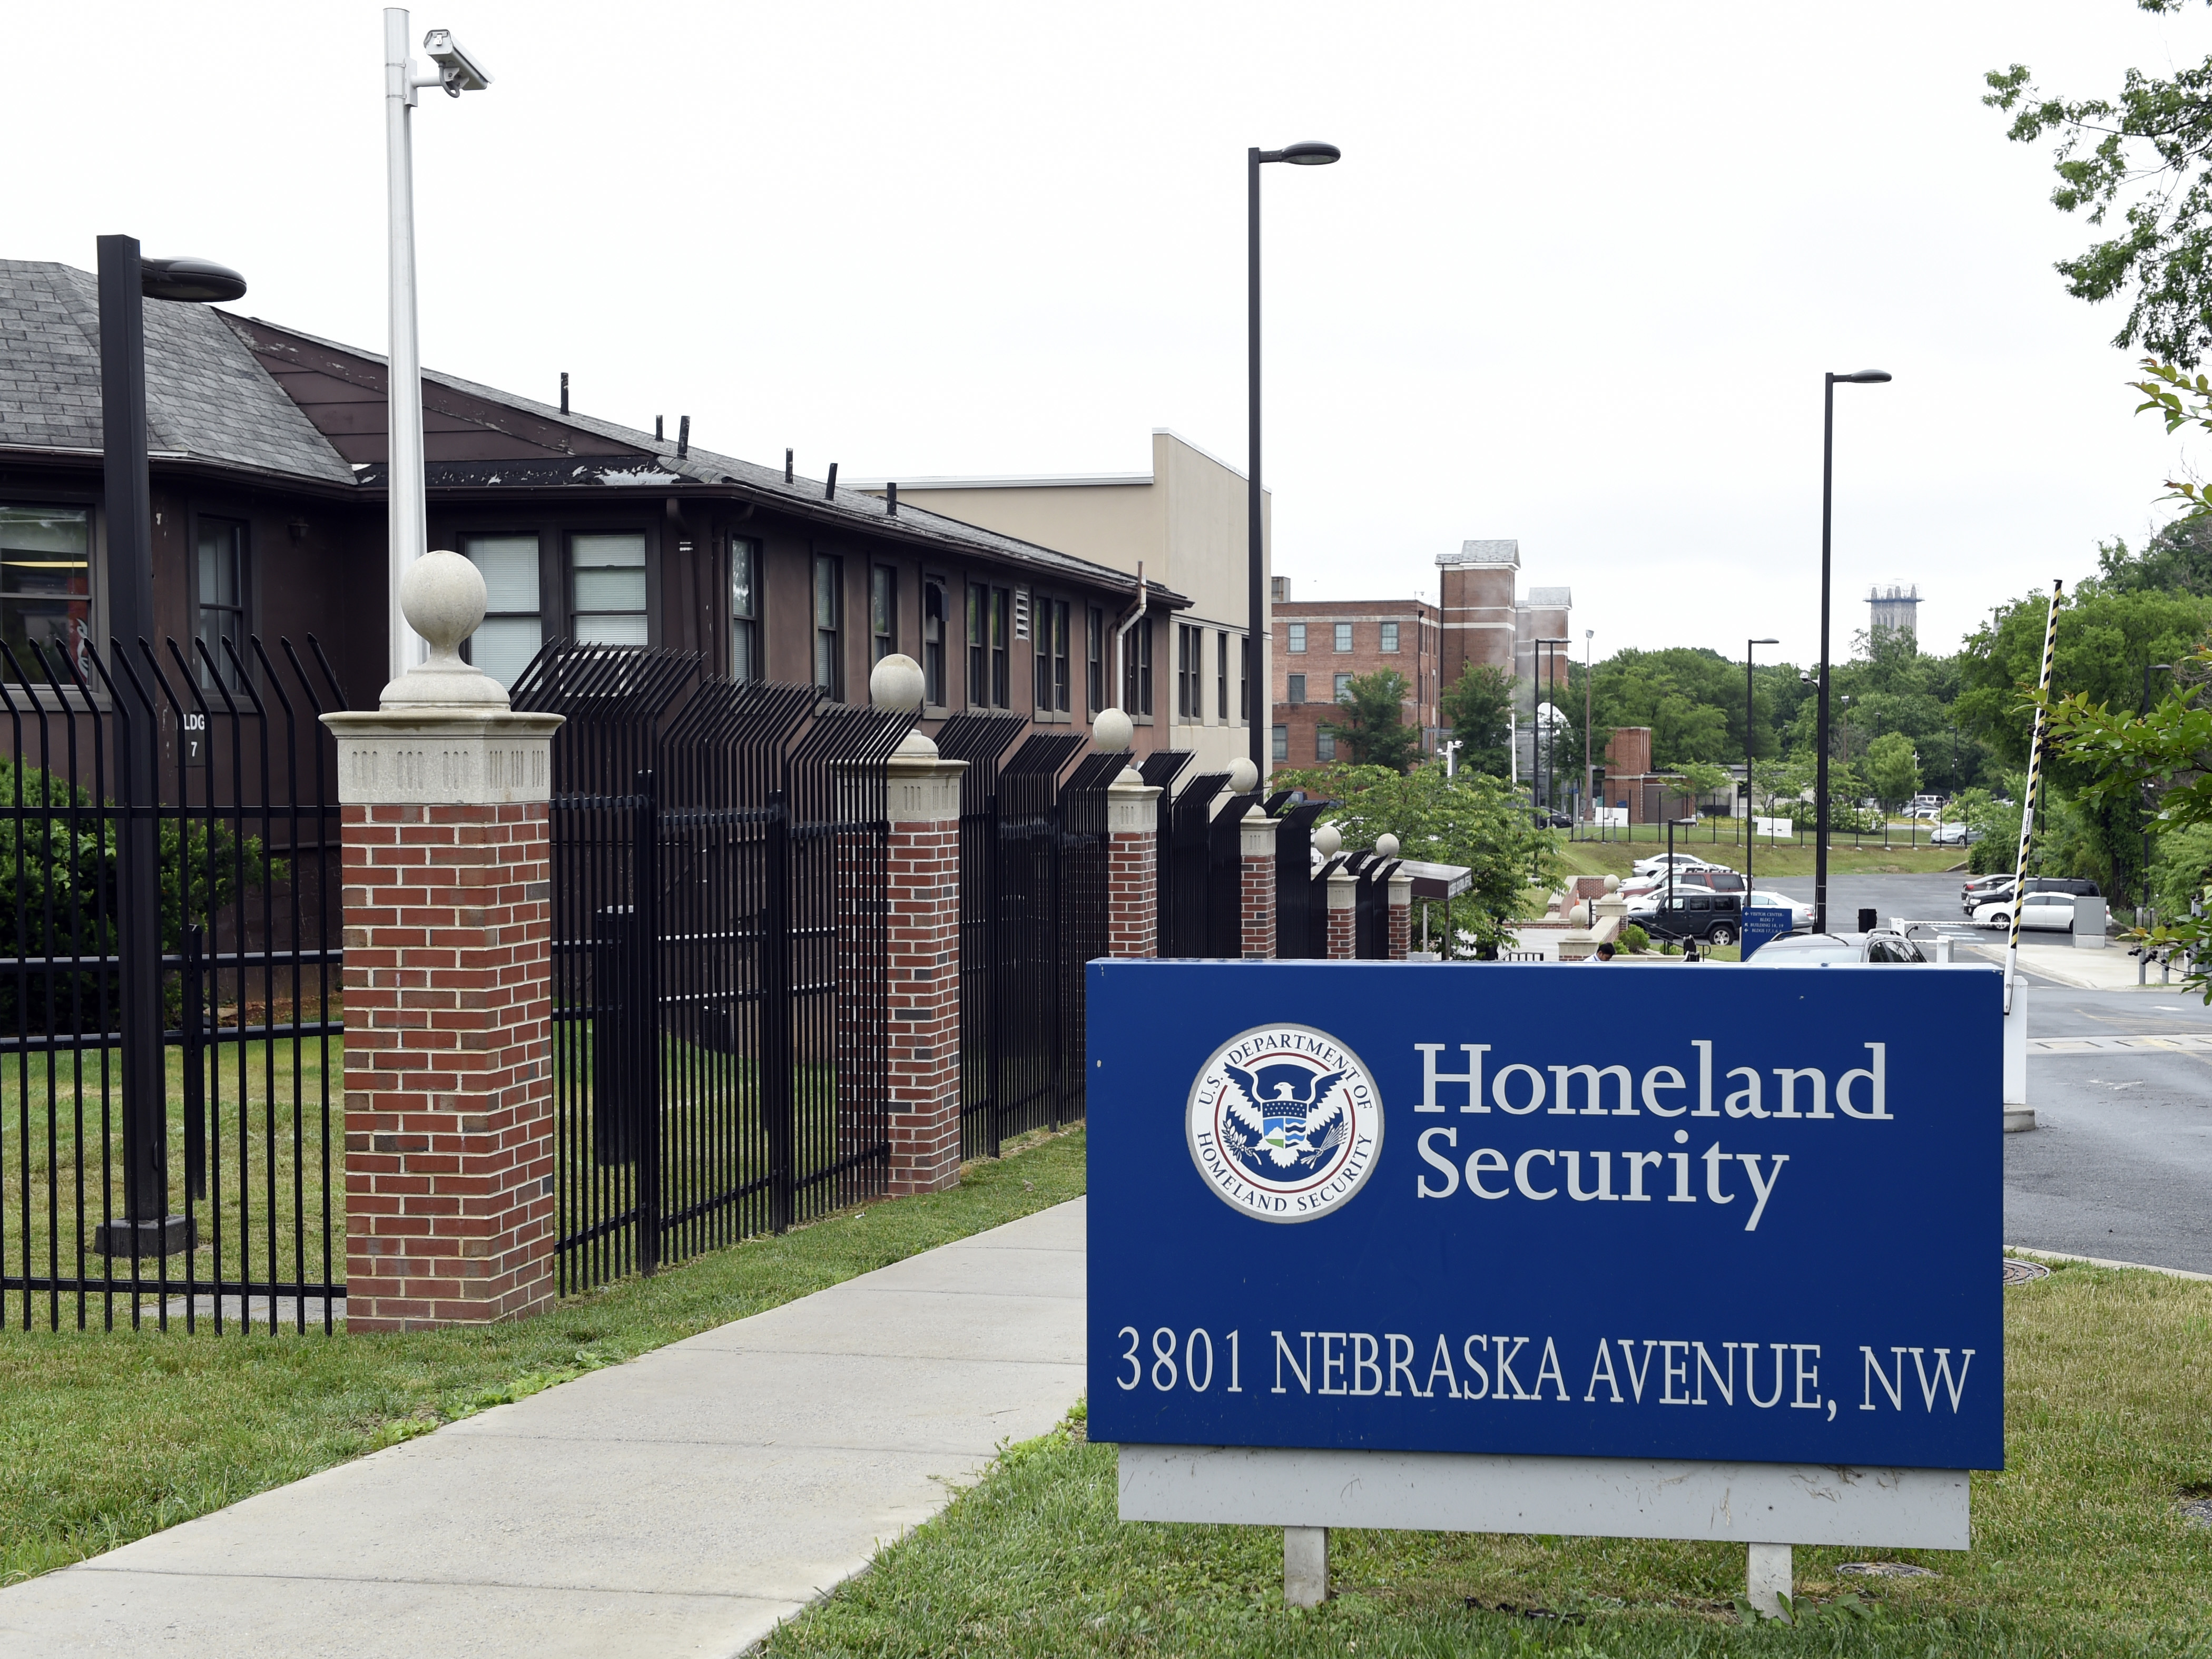 Oops: Over 800 Immigrants From Countries Of National Security Concern Granted Citizenship